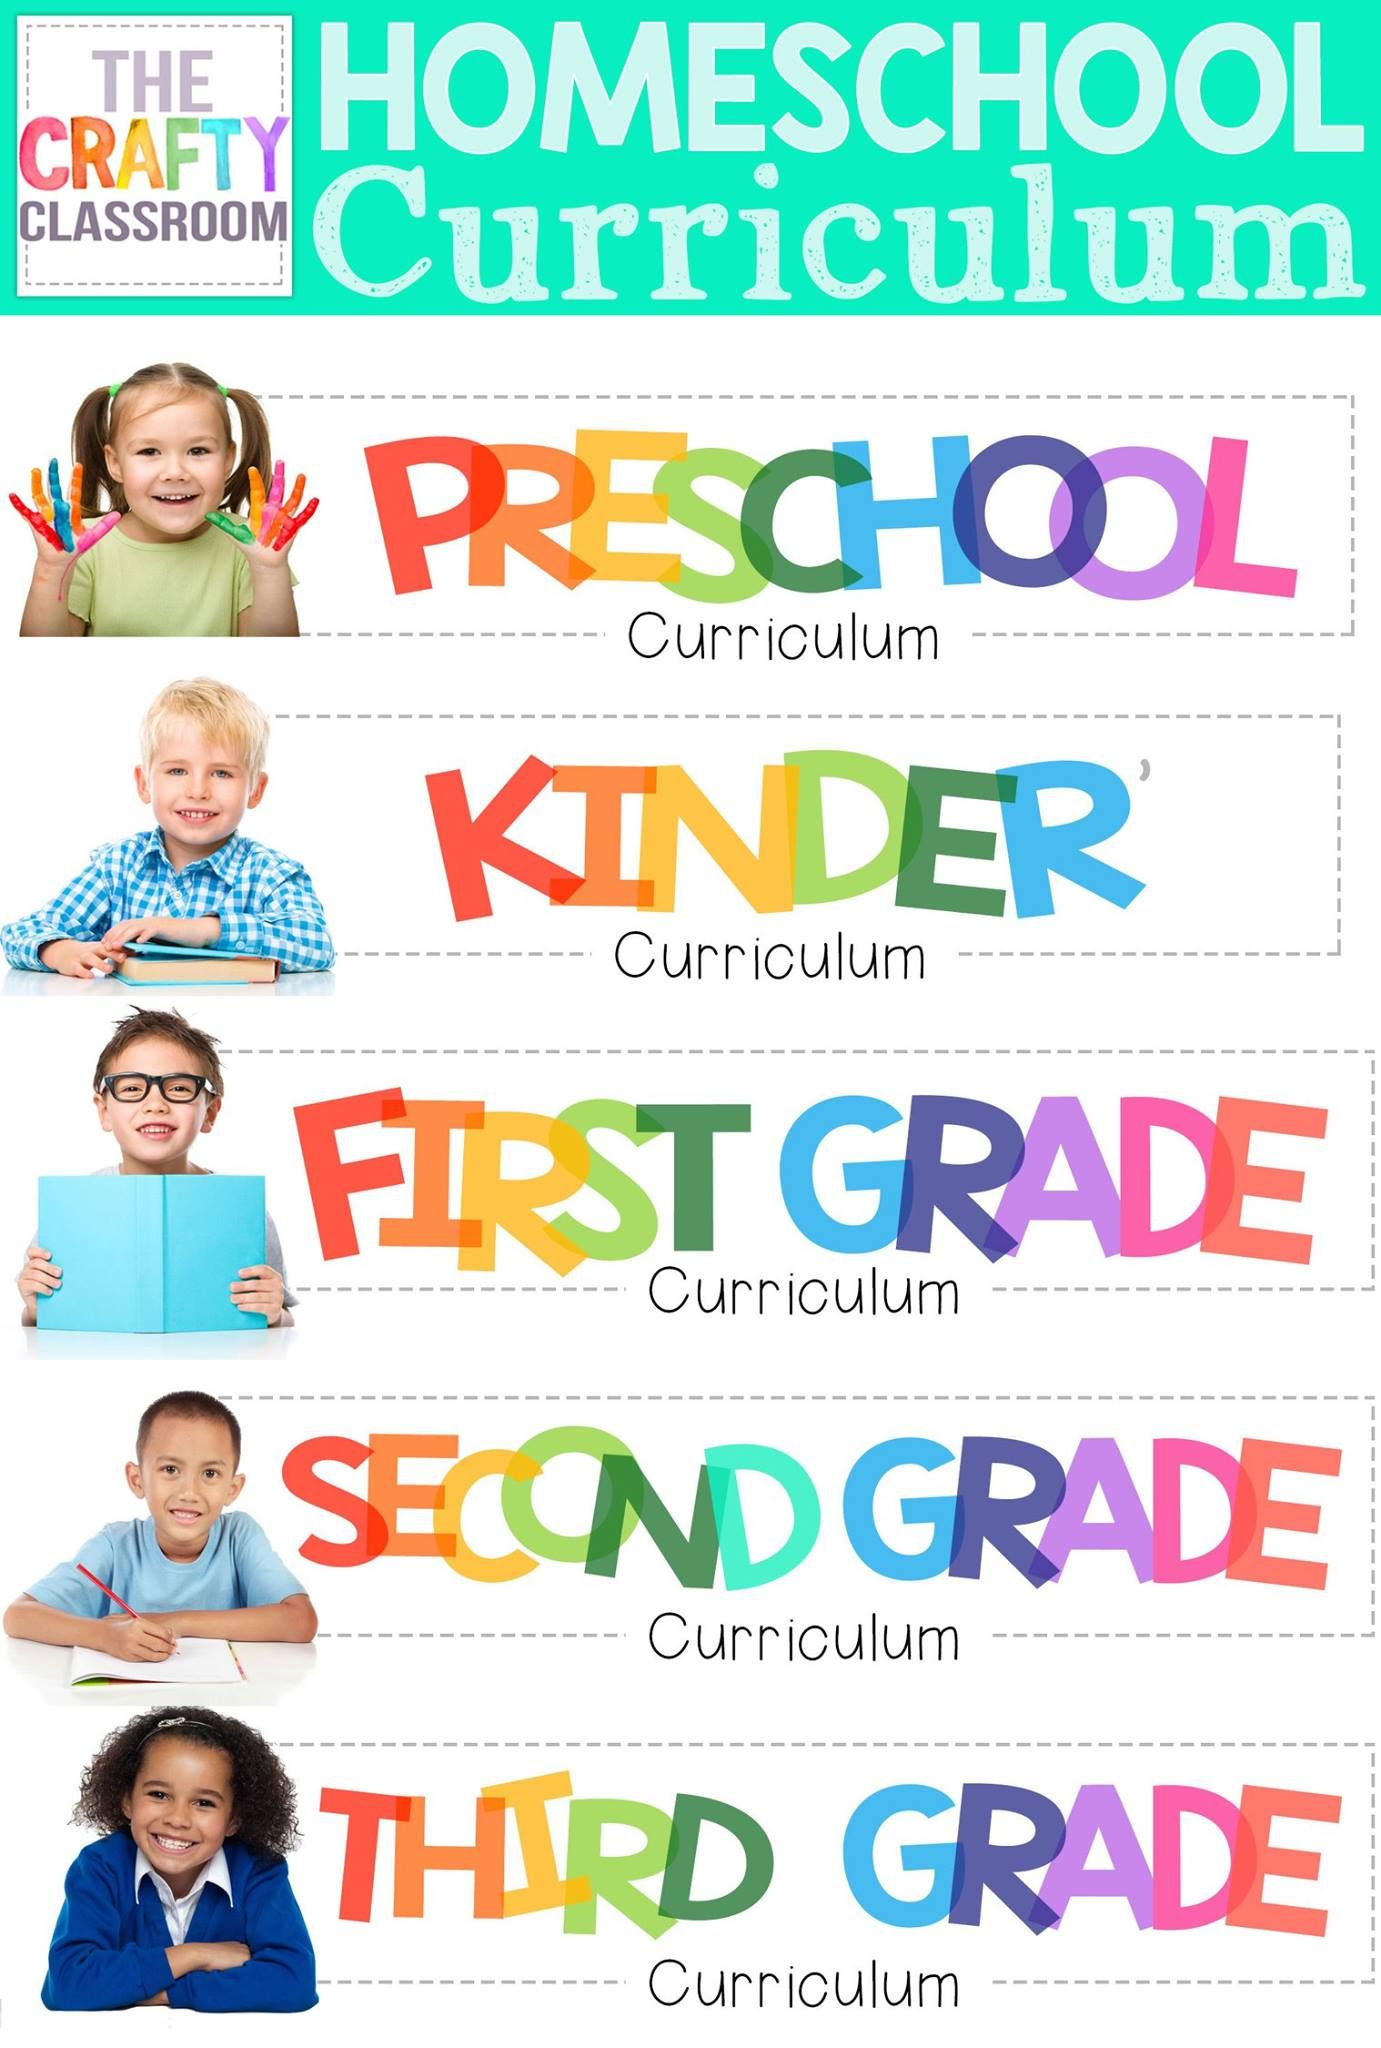 Printable full homeschool curriculum that is affordable